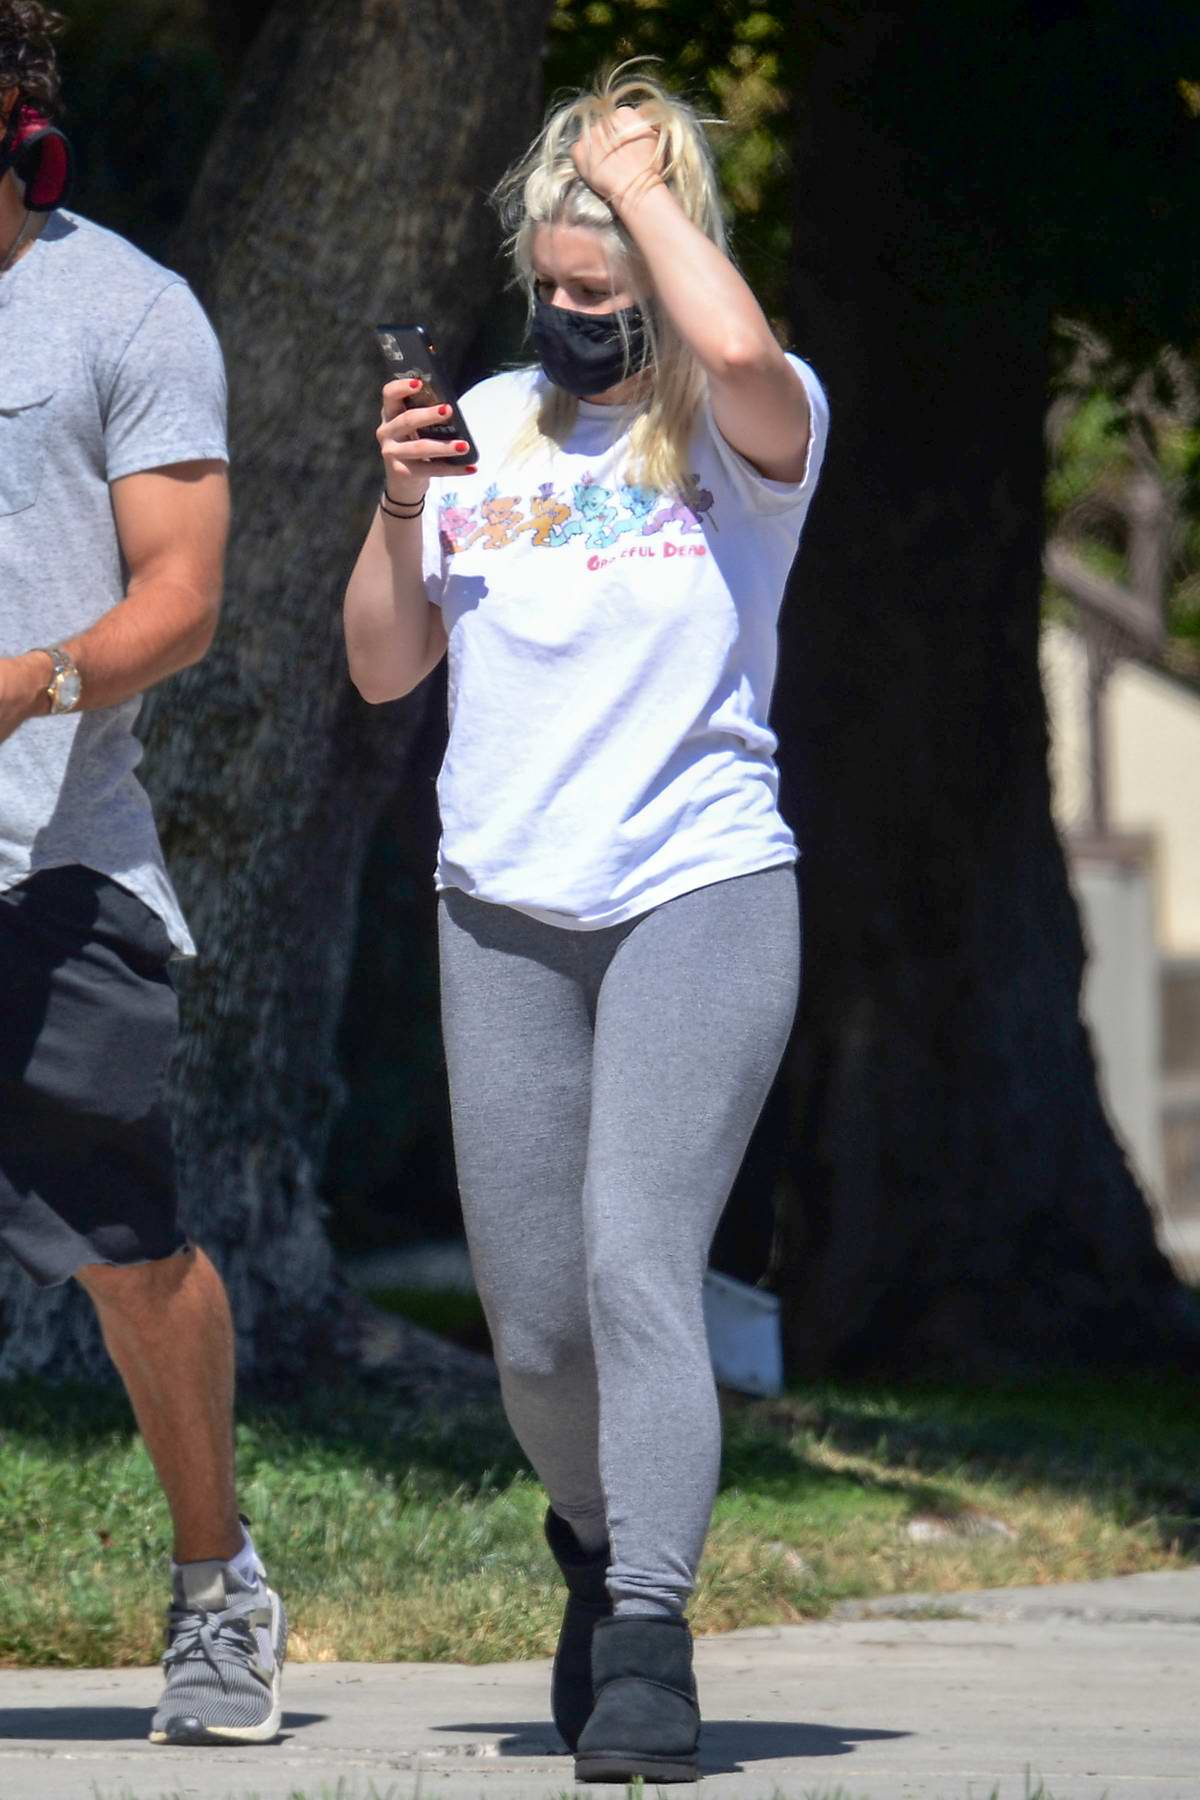 Ariel Winter keeps it casual in a white tee and grey leggings while out with her friends in North Hollywood, California